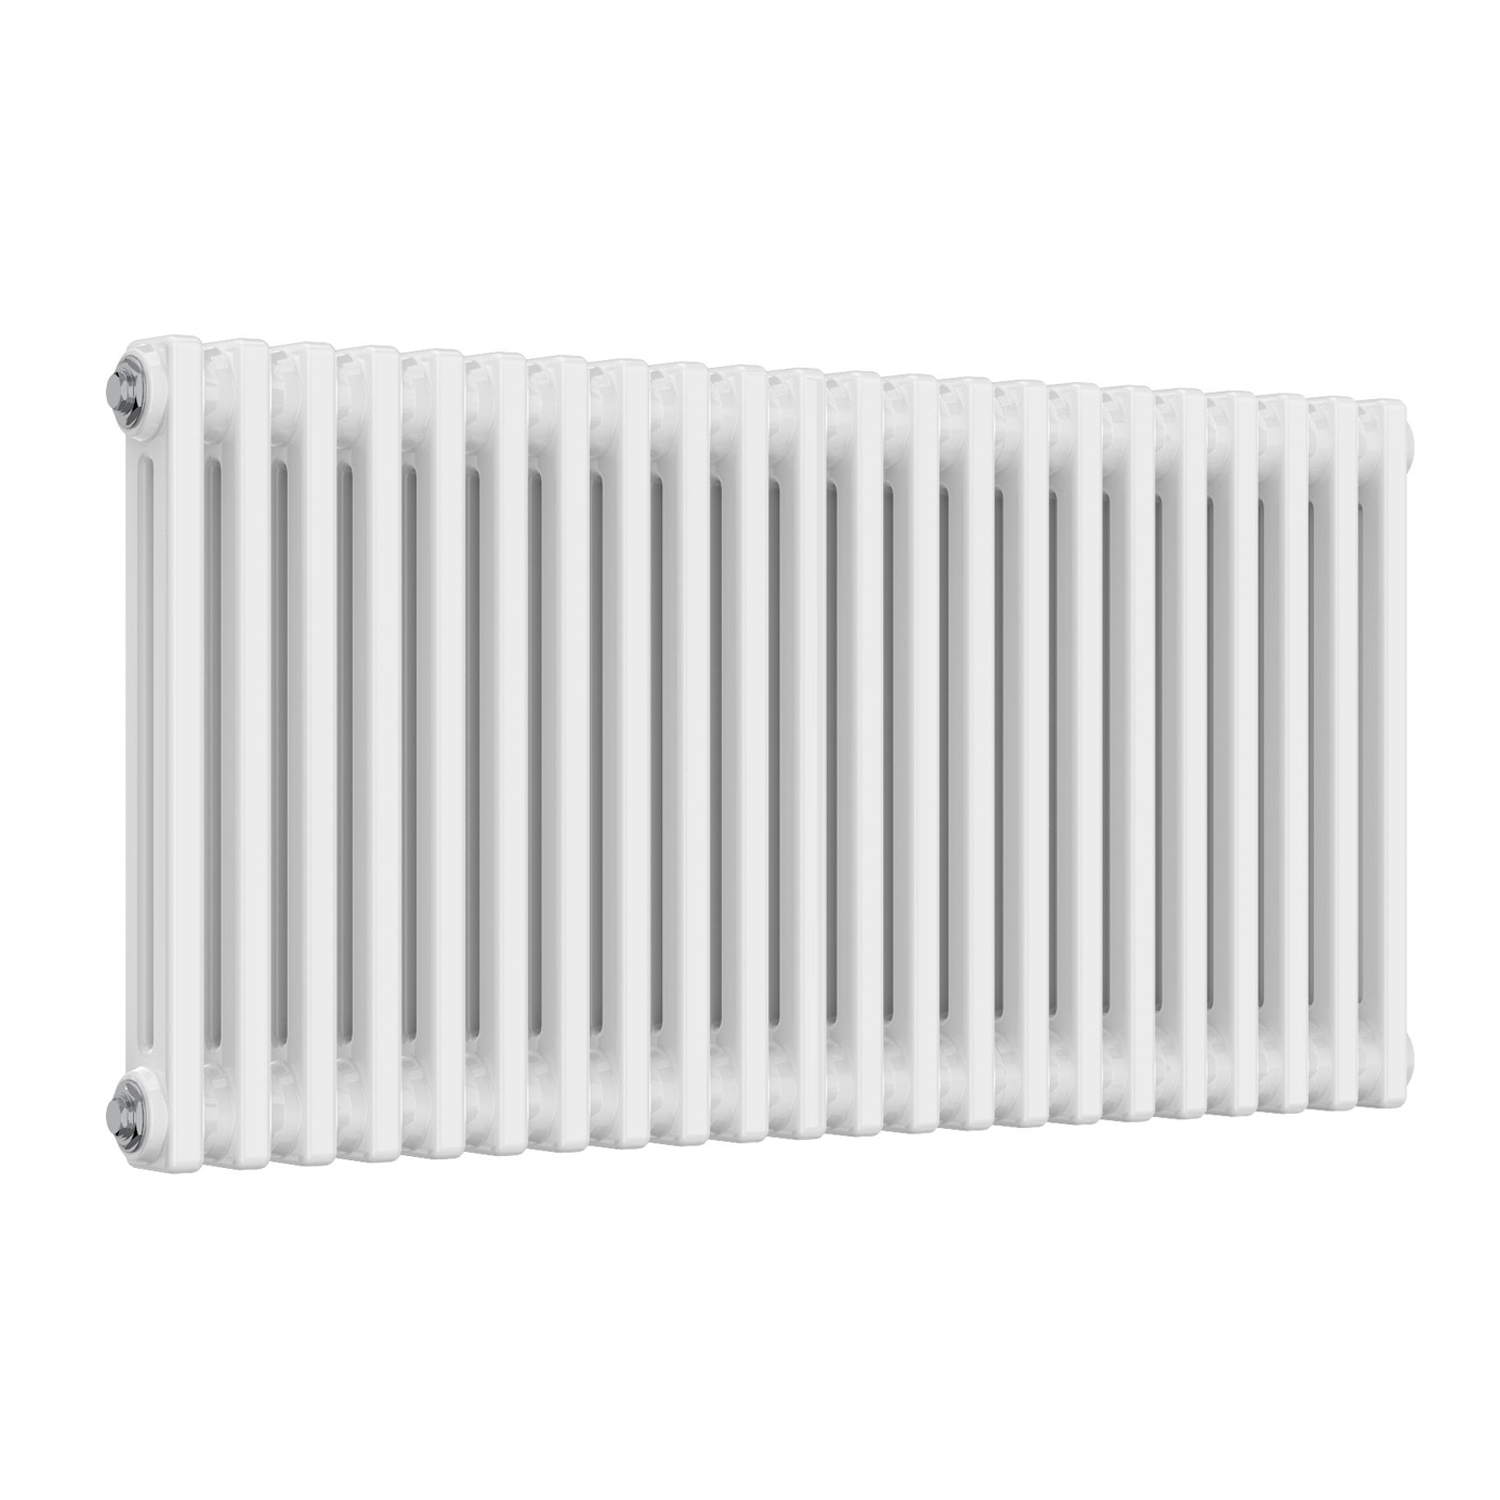 Stelrad Radical Radiator 600mm H x 400mm W Single Convector 15mm Straight TRV